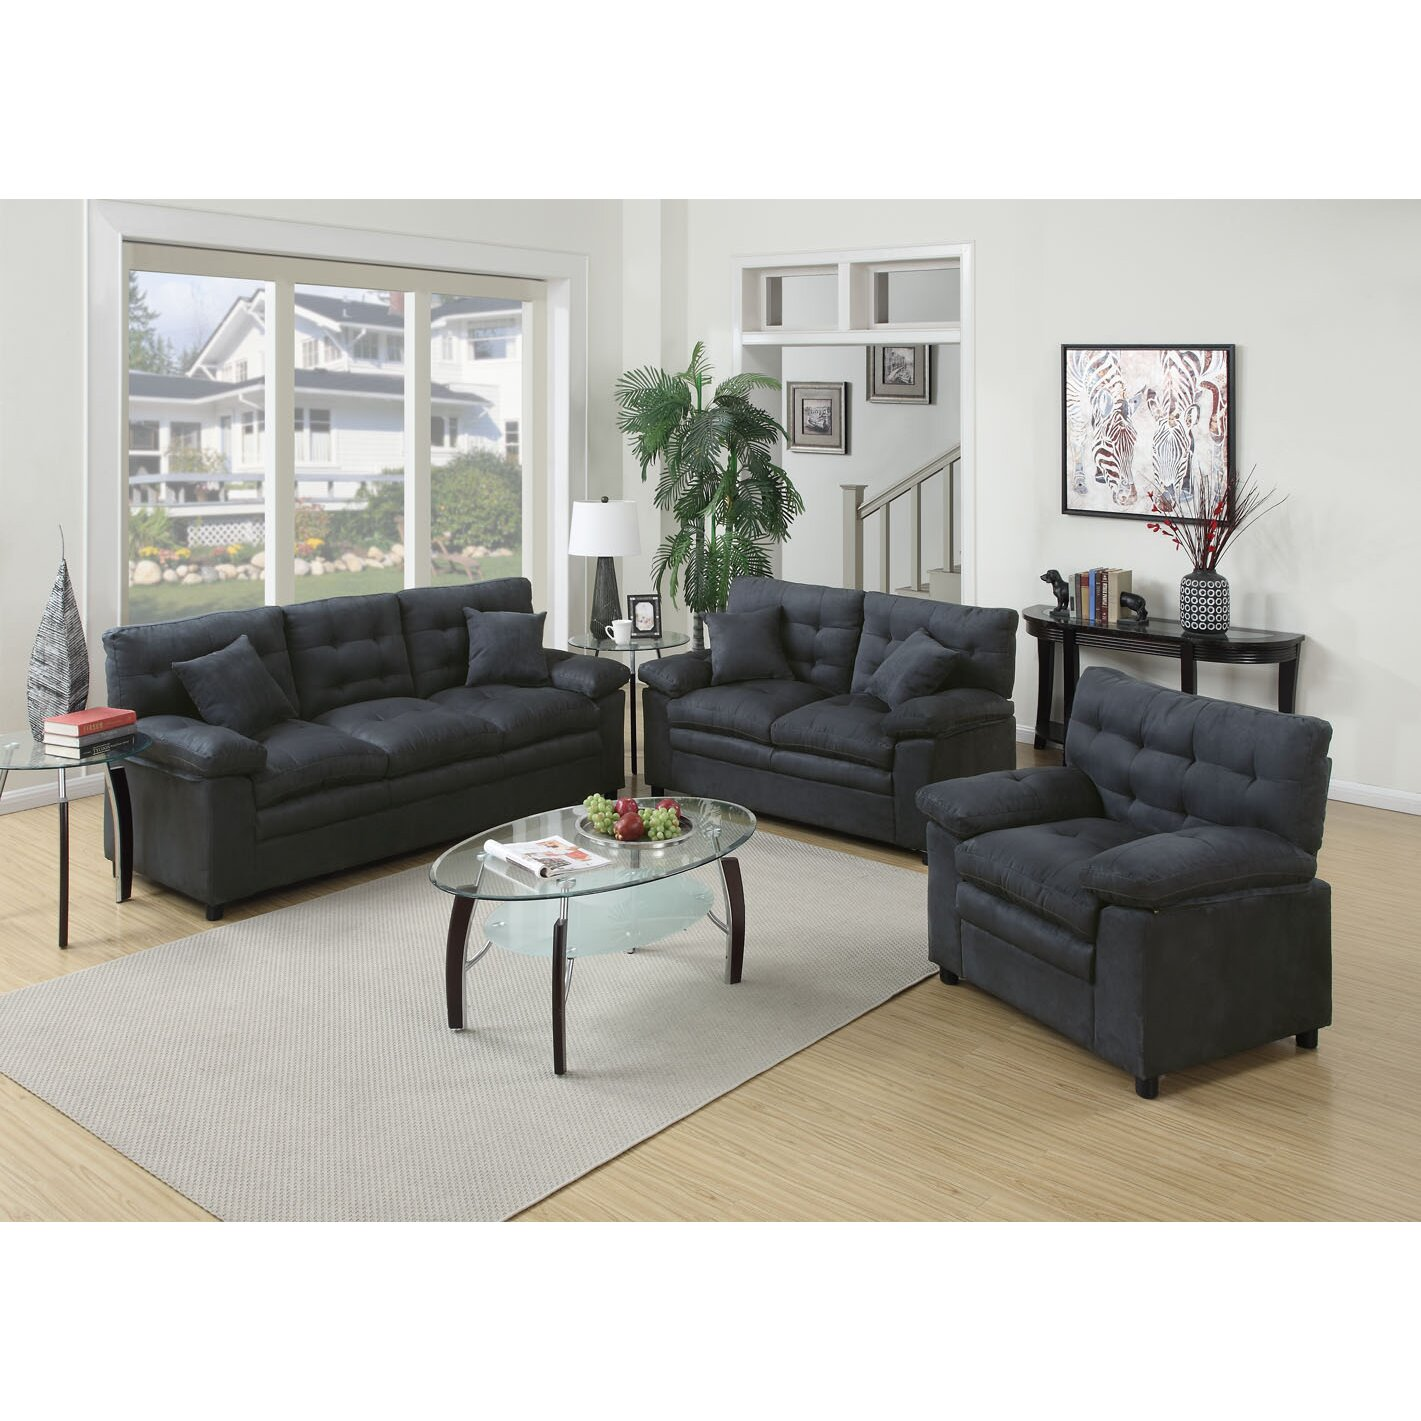 Poundex bobkona colona 3 piece living room set reviews Pics of living room sets